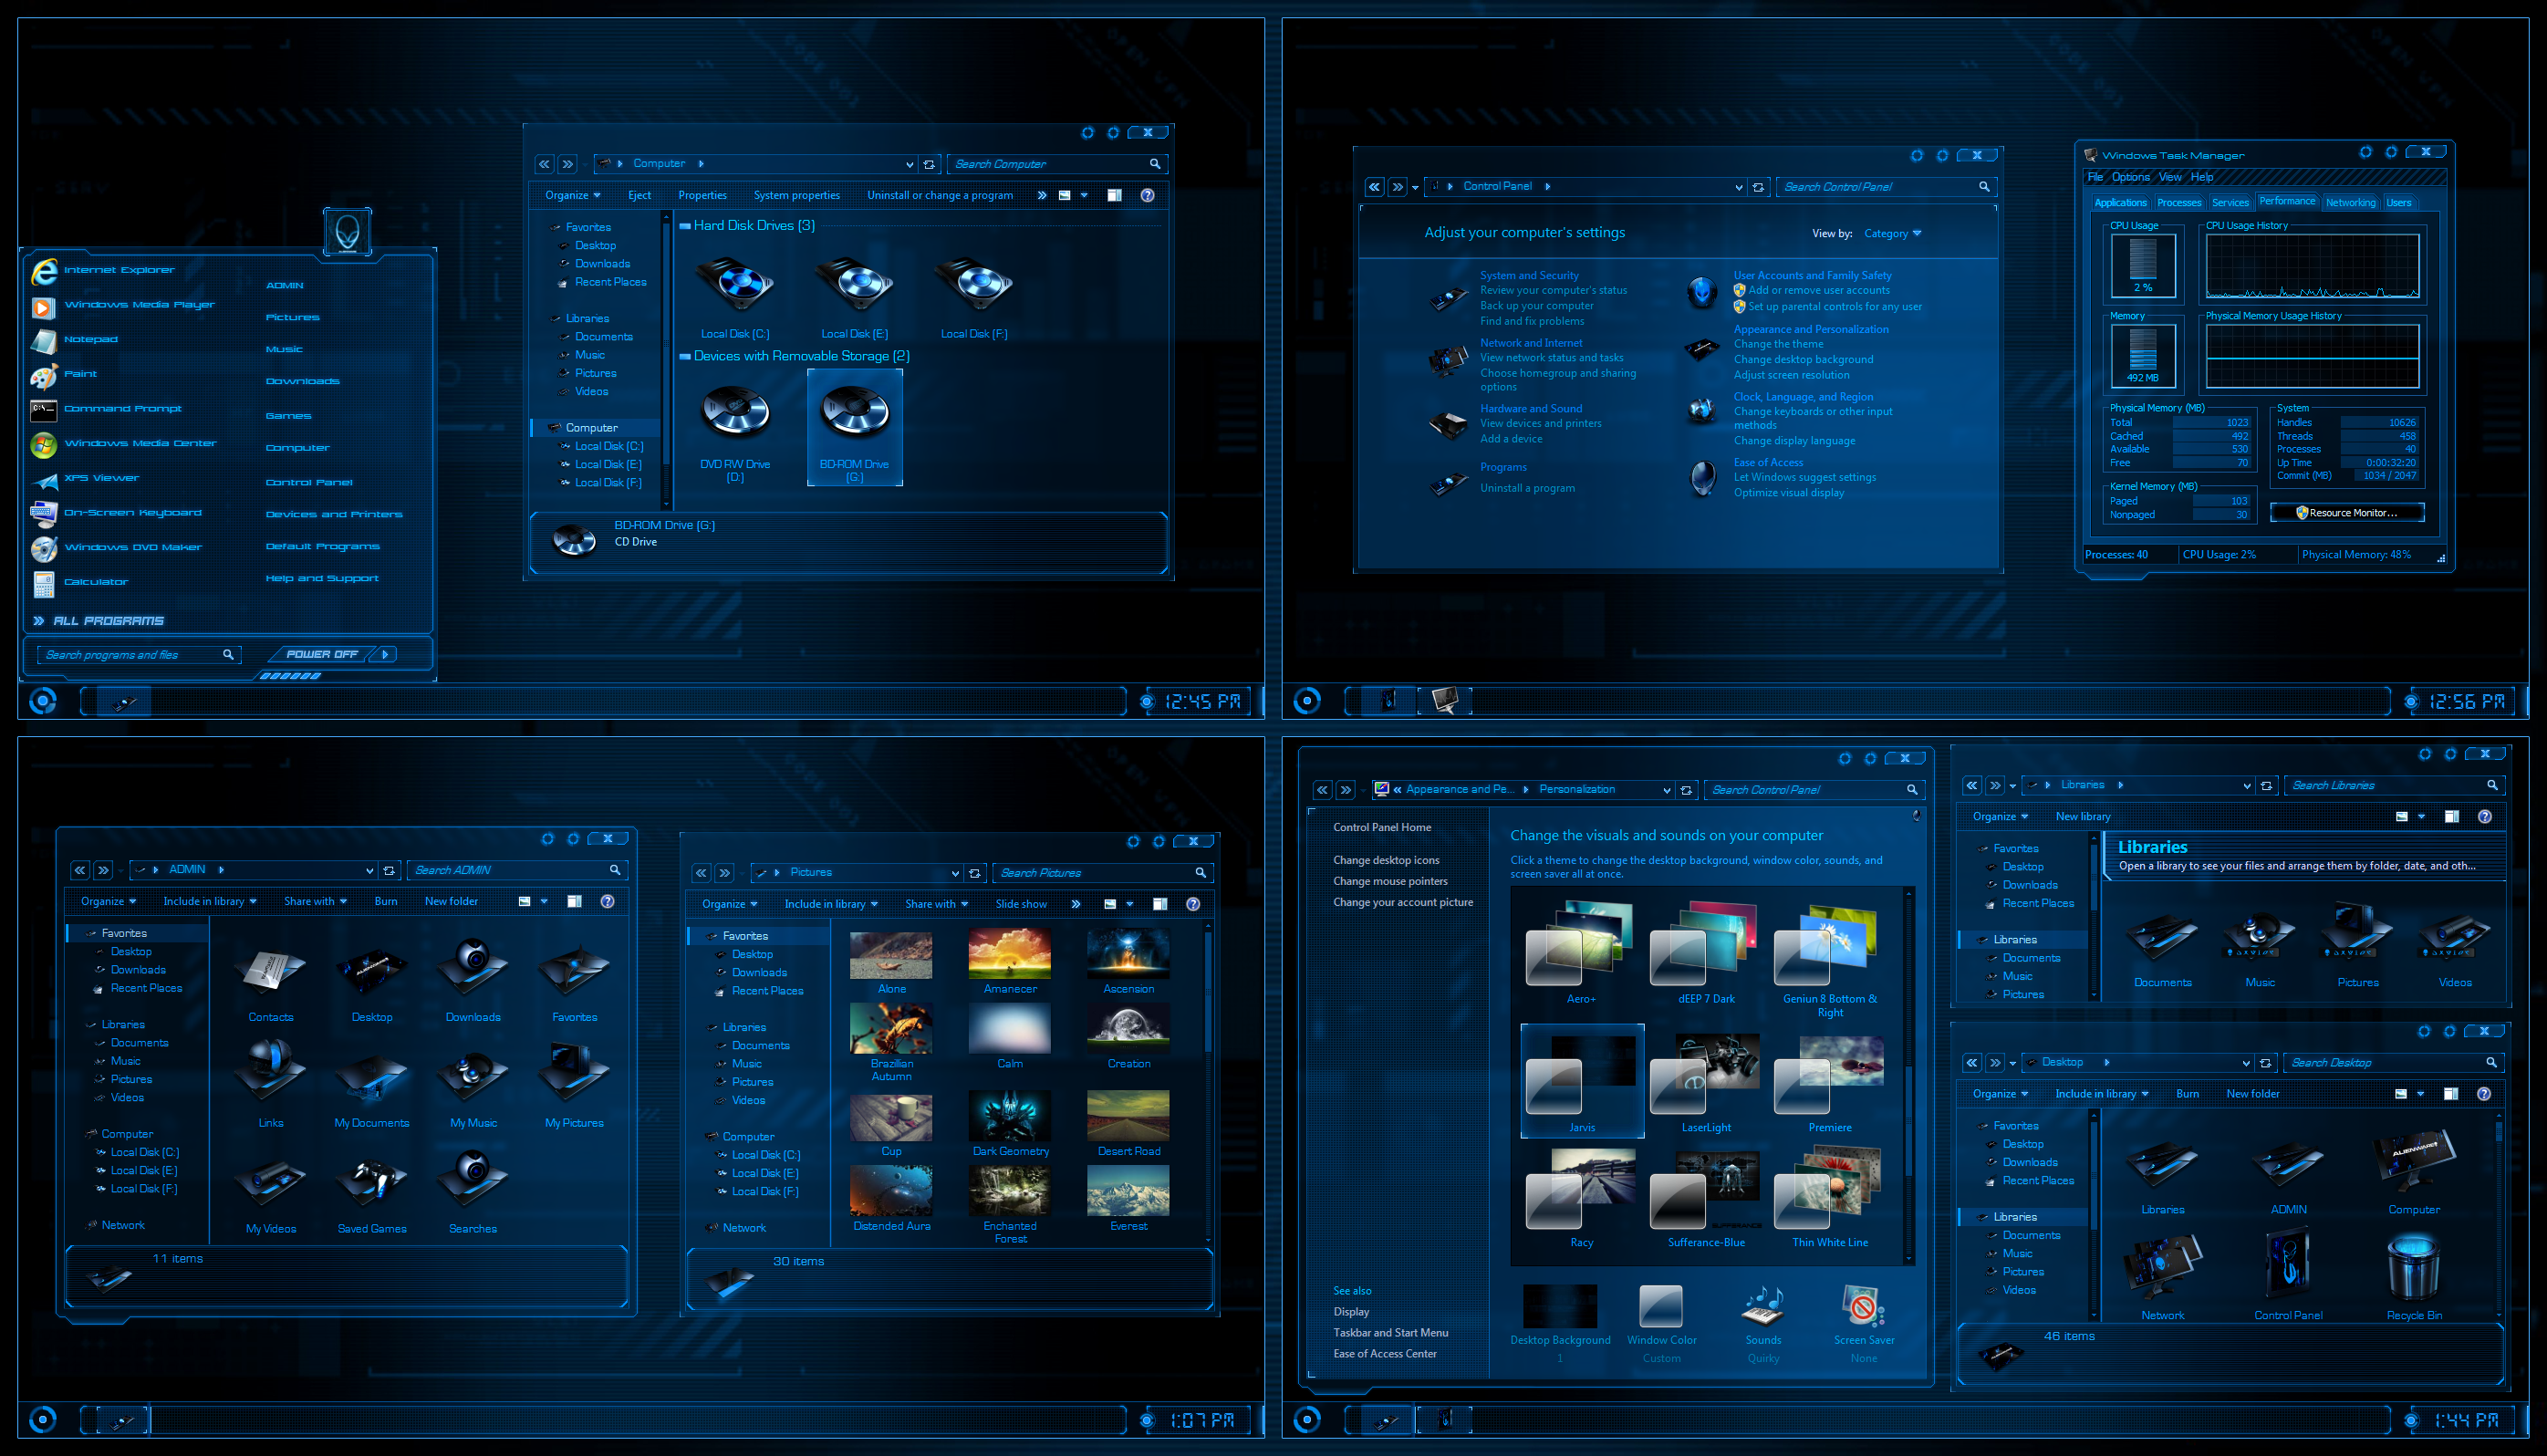 Animated 3d wallpaper jarvis interface - Jarvis By Ultimatedesktops